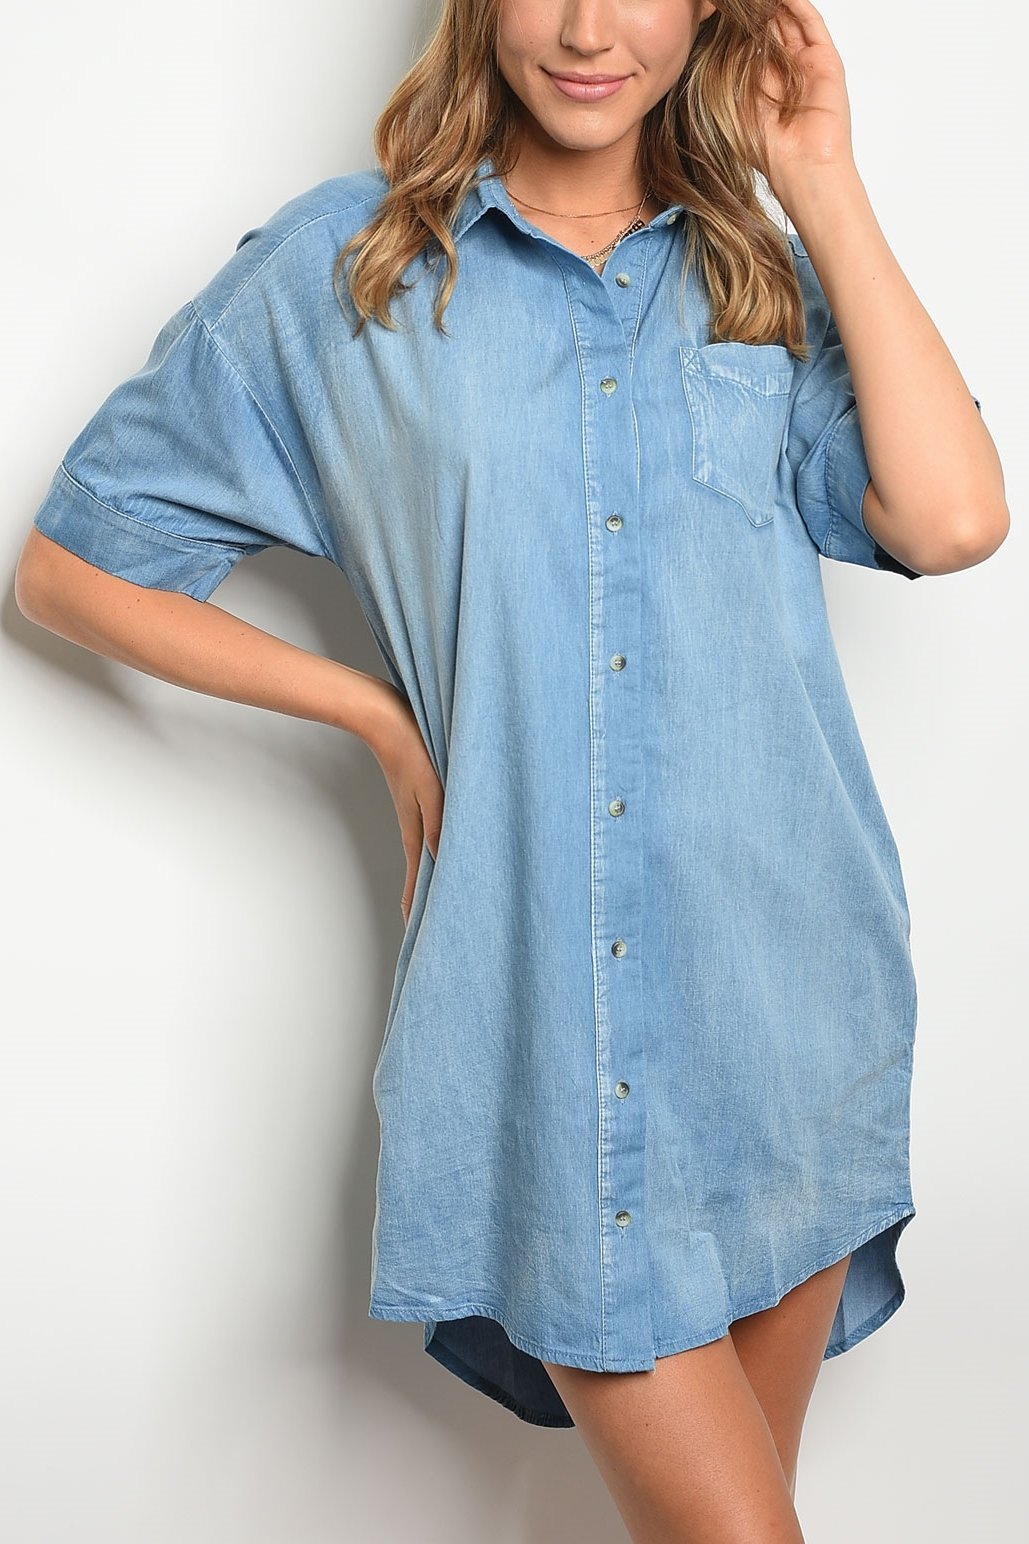 Surplus Denim Shirt Dress Frock Shop